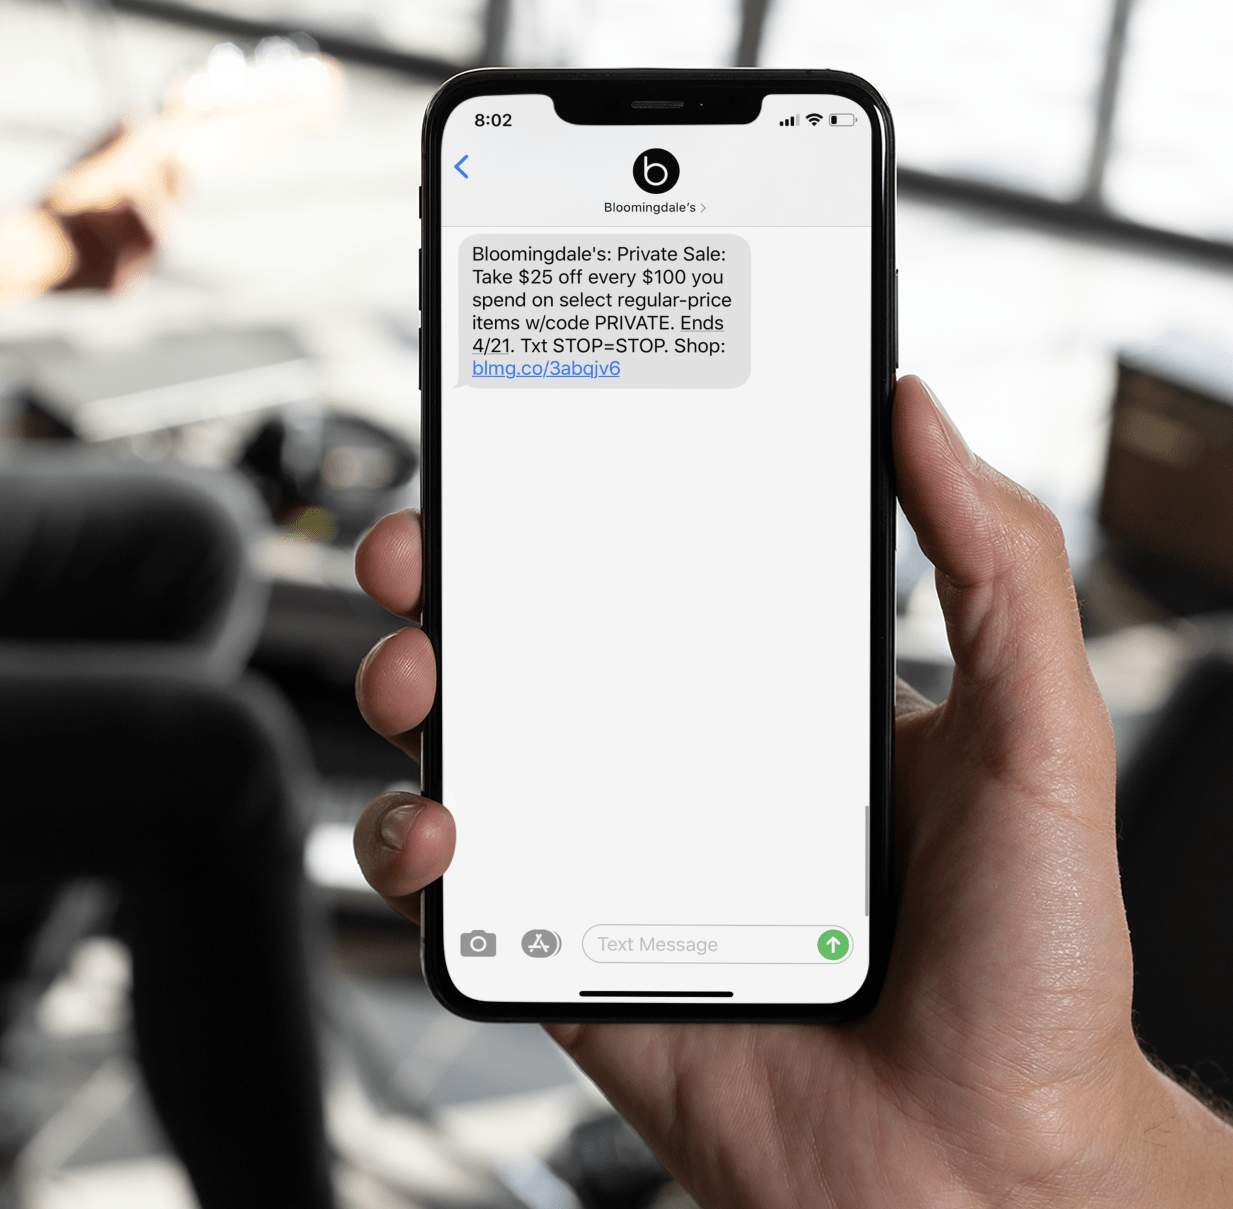 Spy on Texts without Target Phone: CellSpy